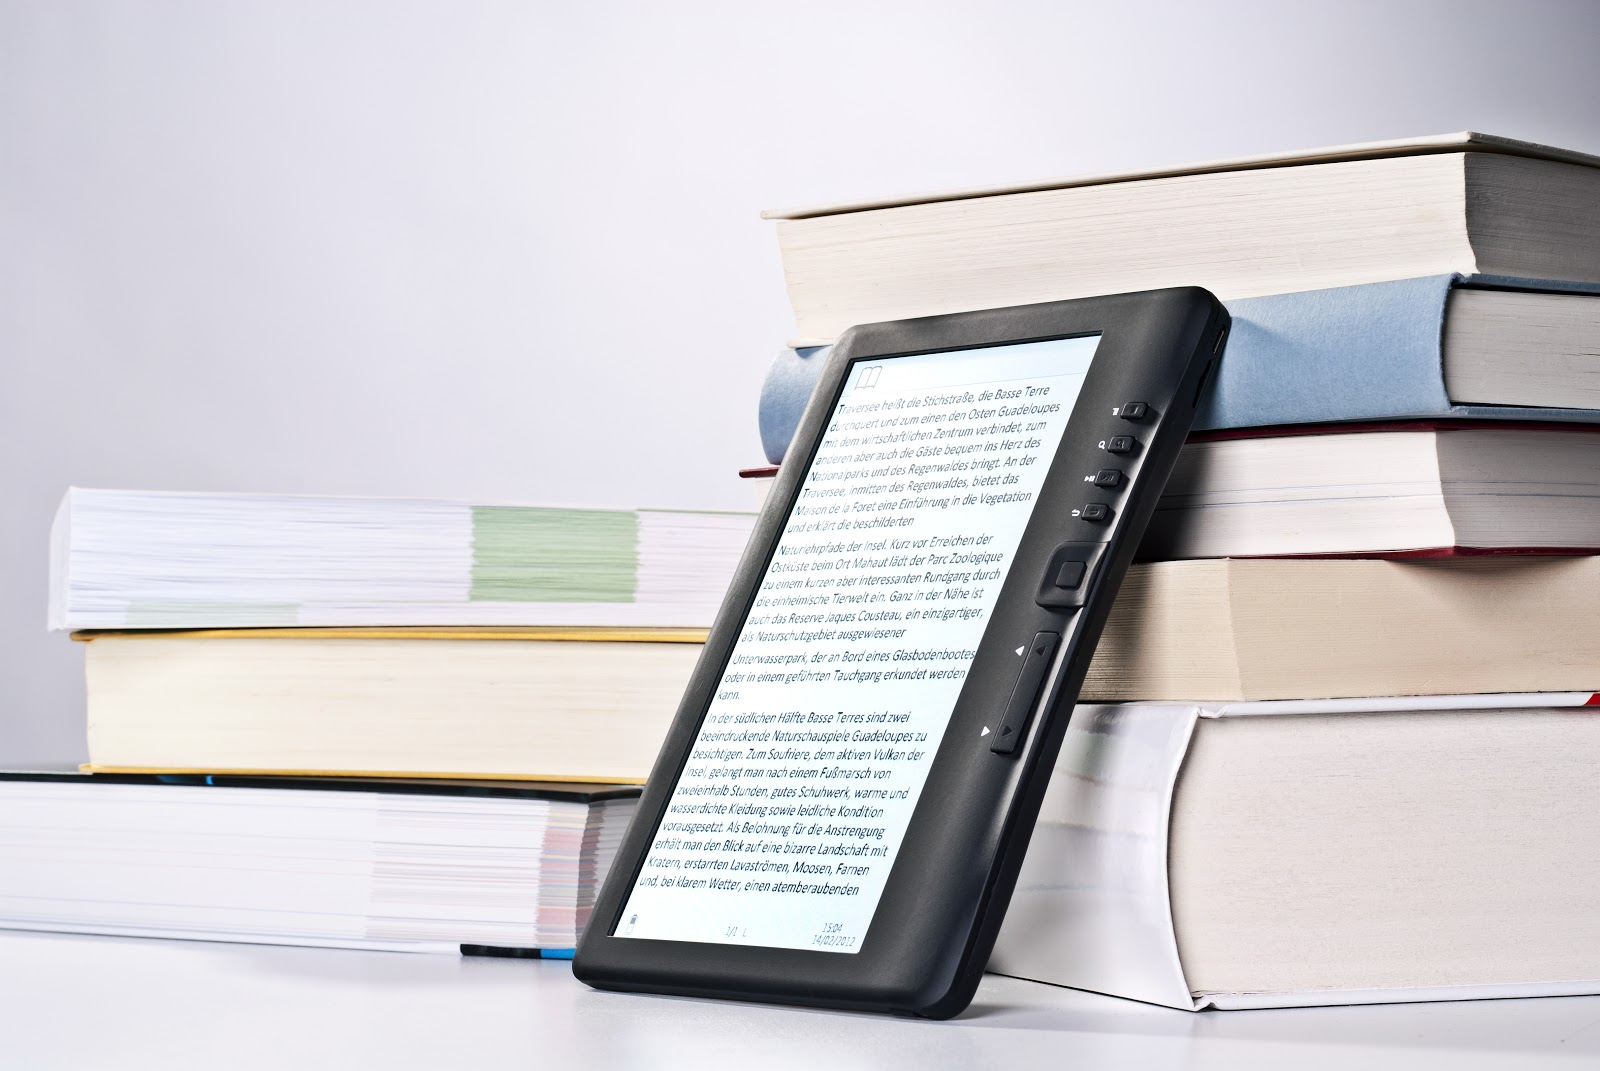 copyrights for ebooks